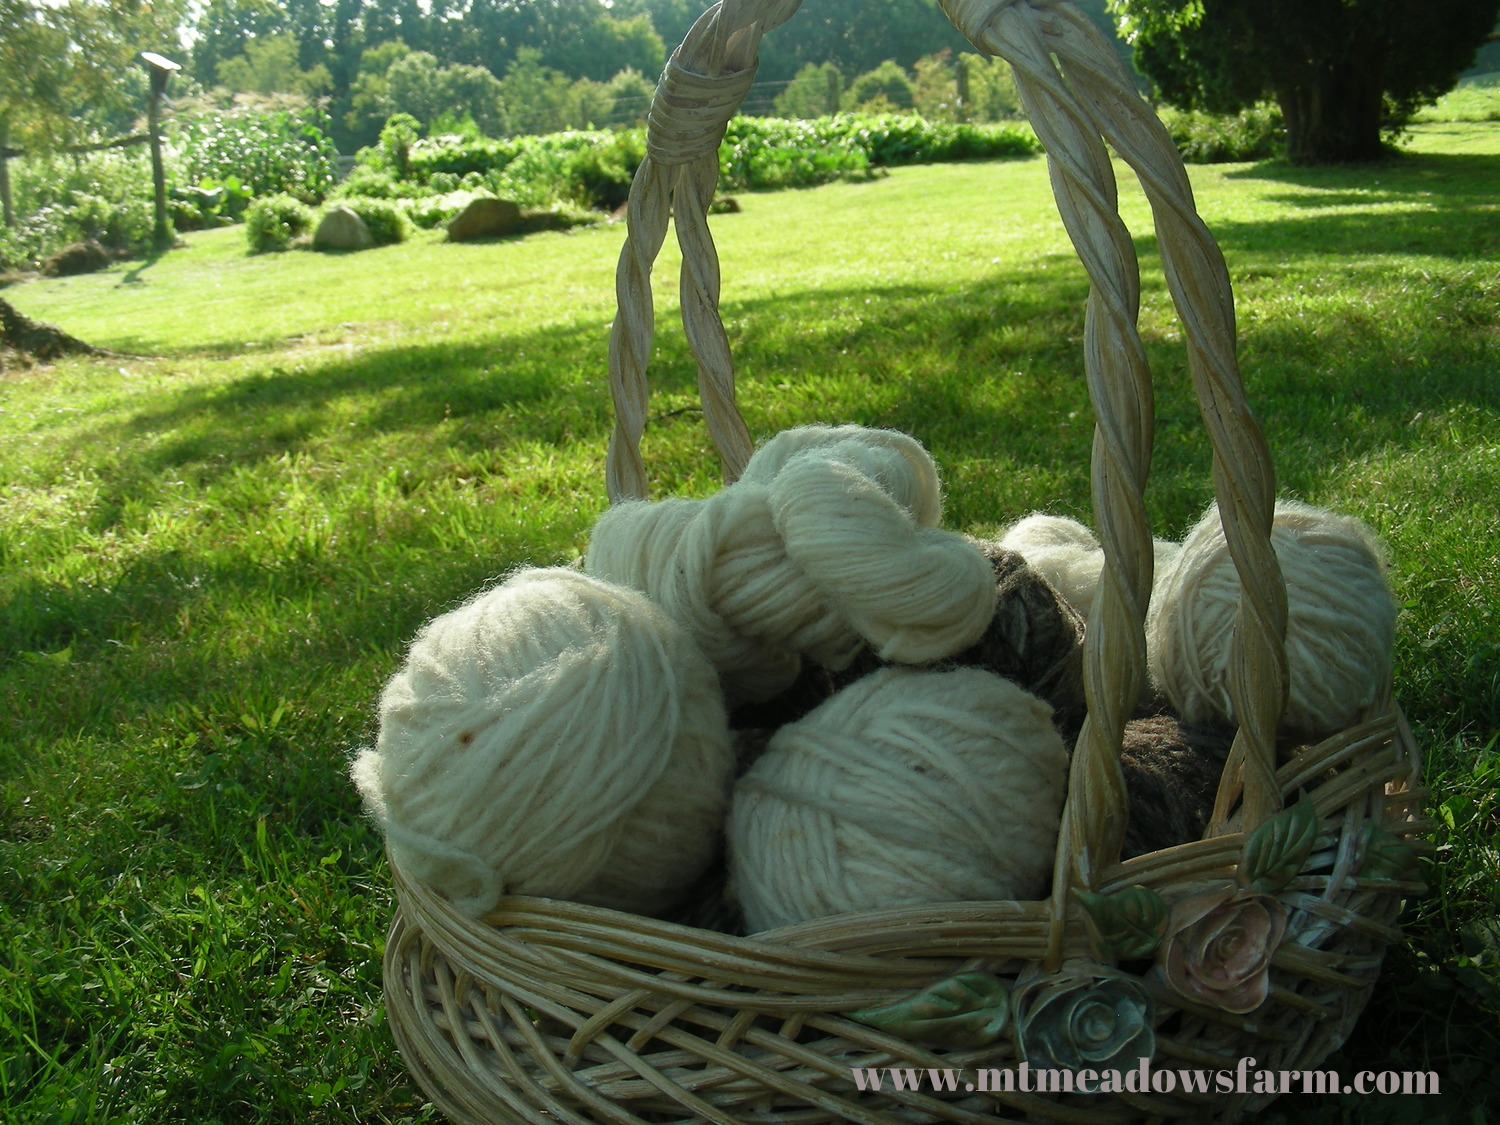 Liz's wool yarn that she spun back in the day!